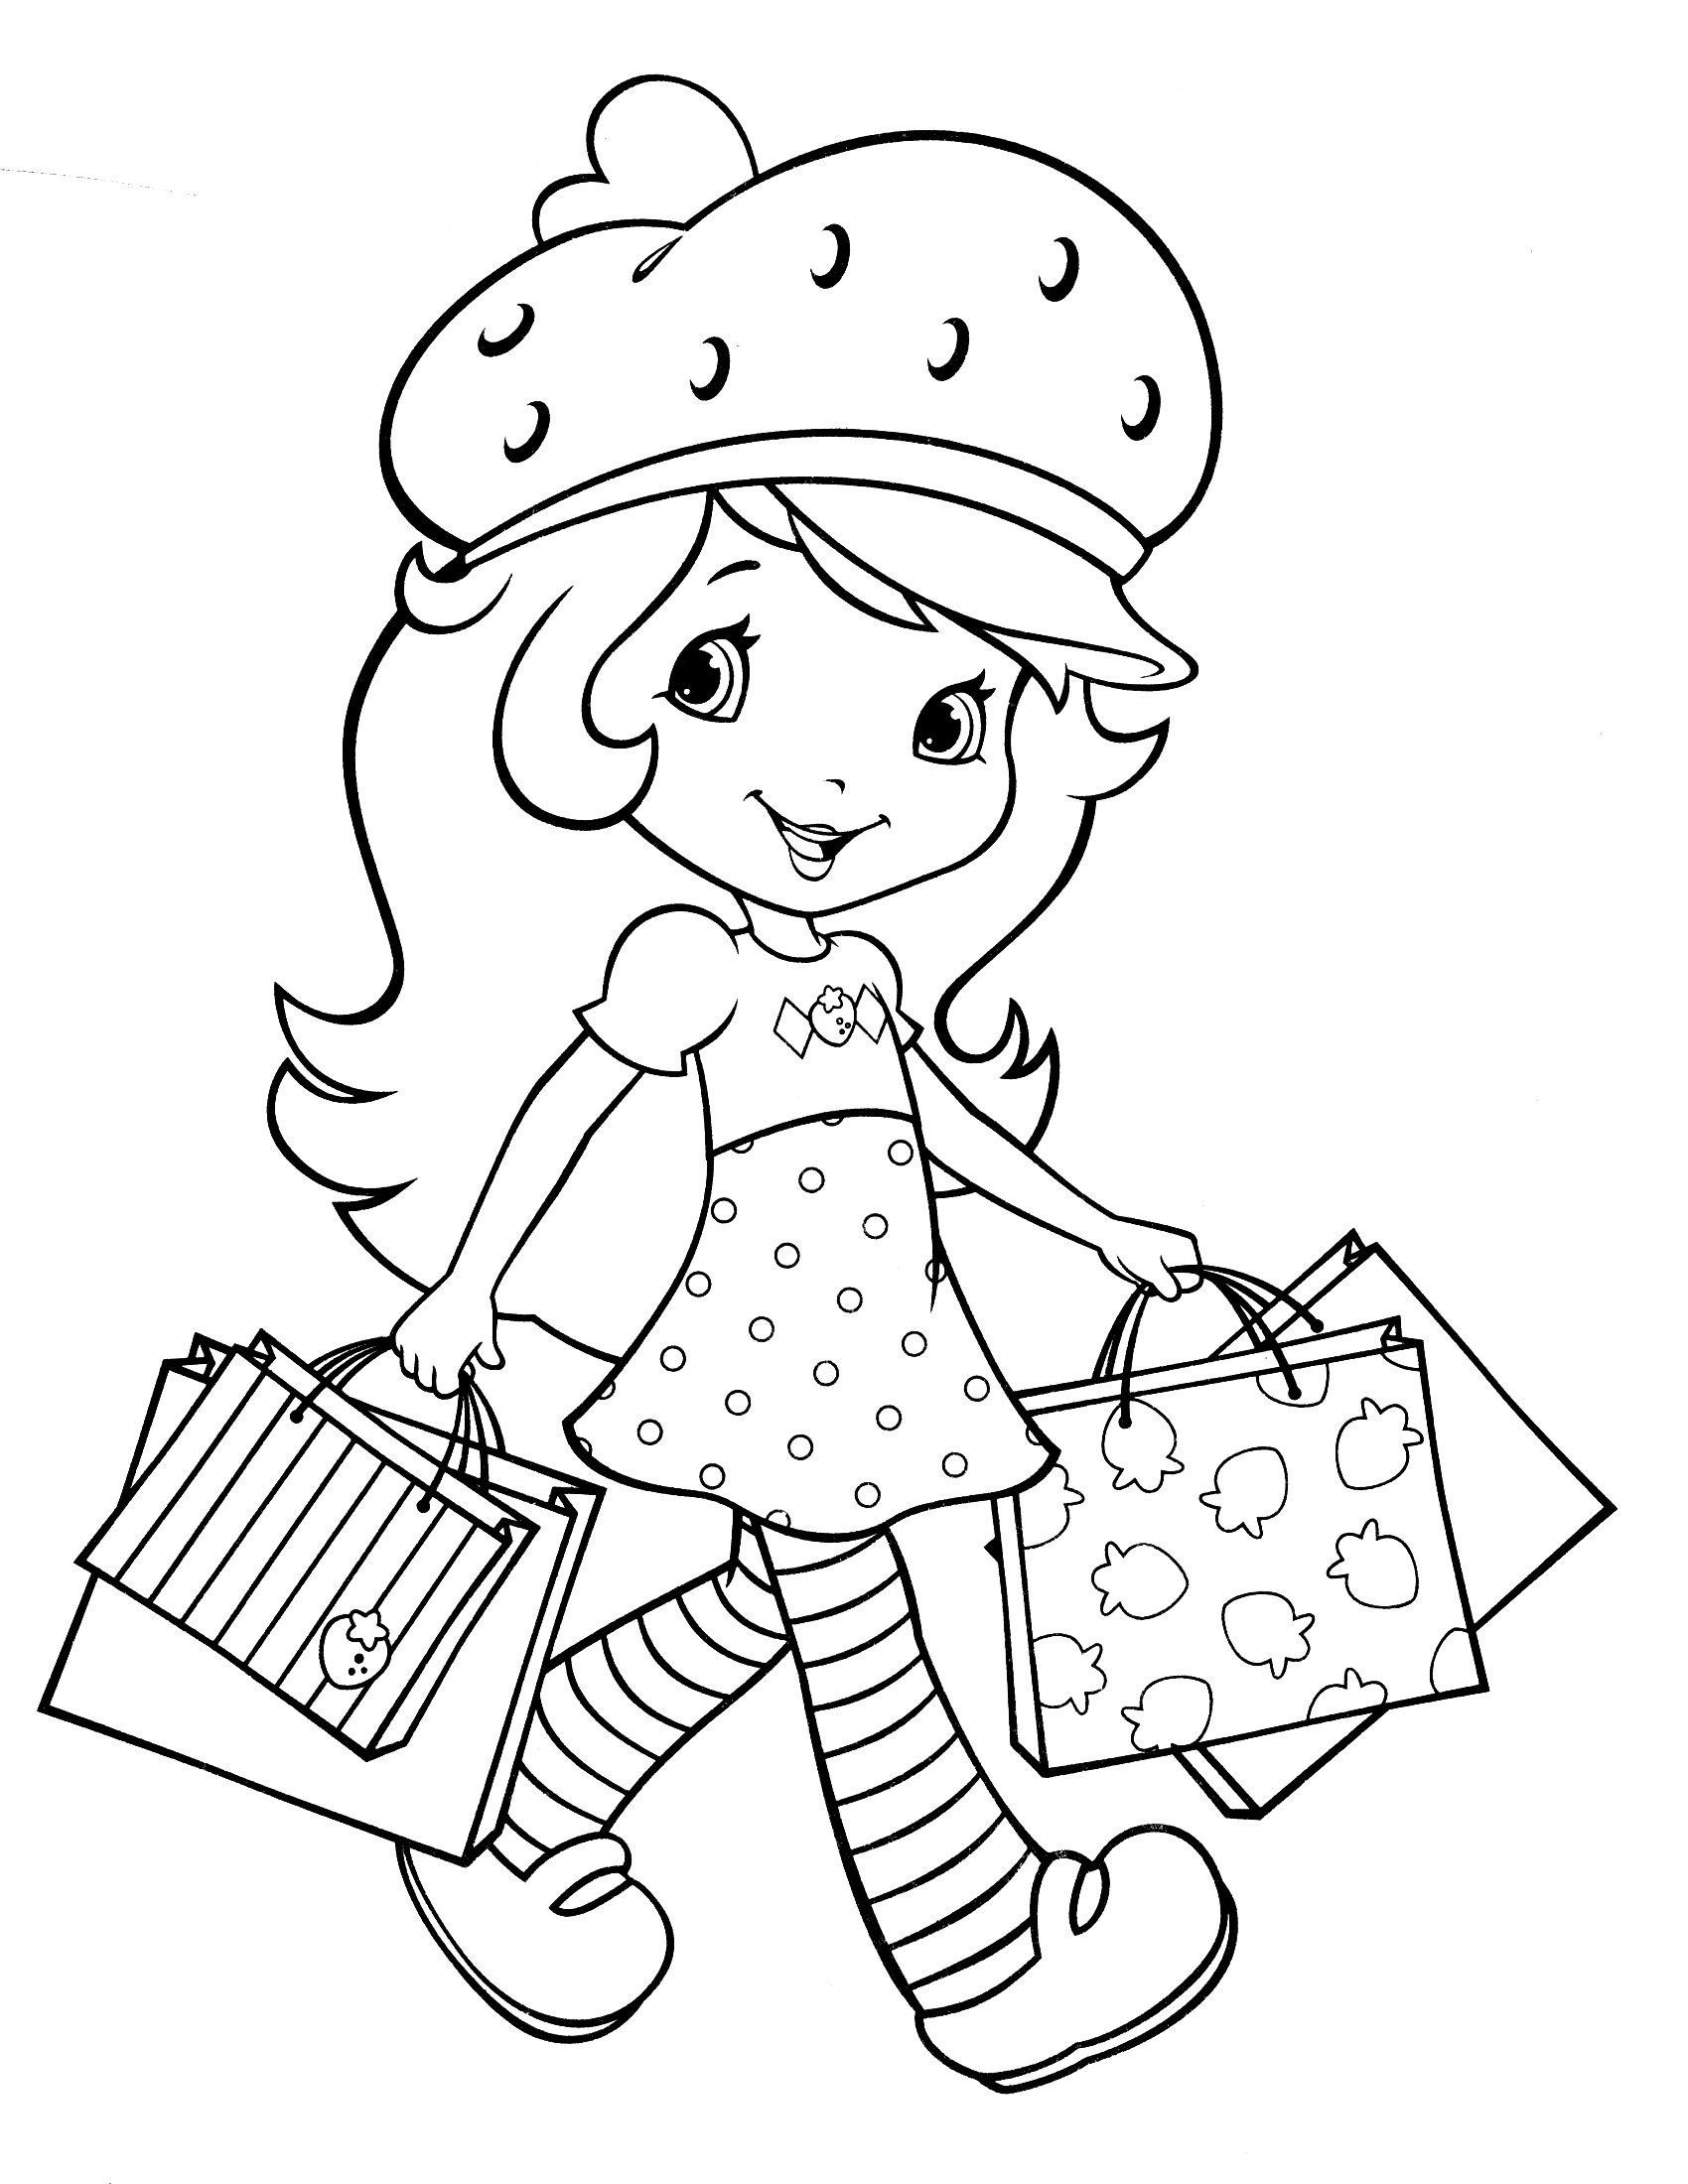 Strawberry Shortcake Coloring Page Luxury Coloring Pages Coloring